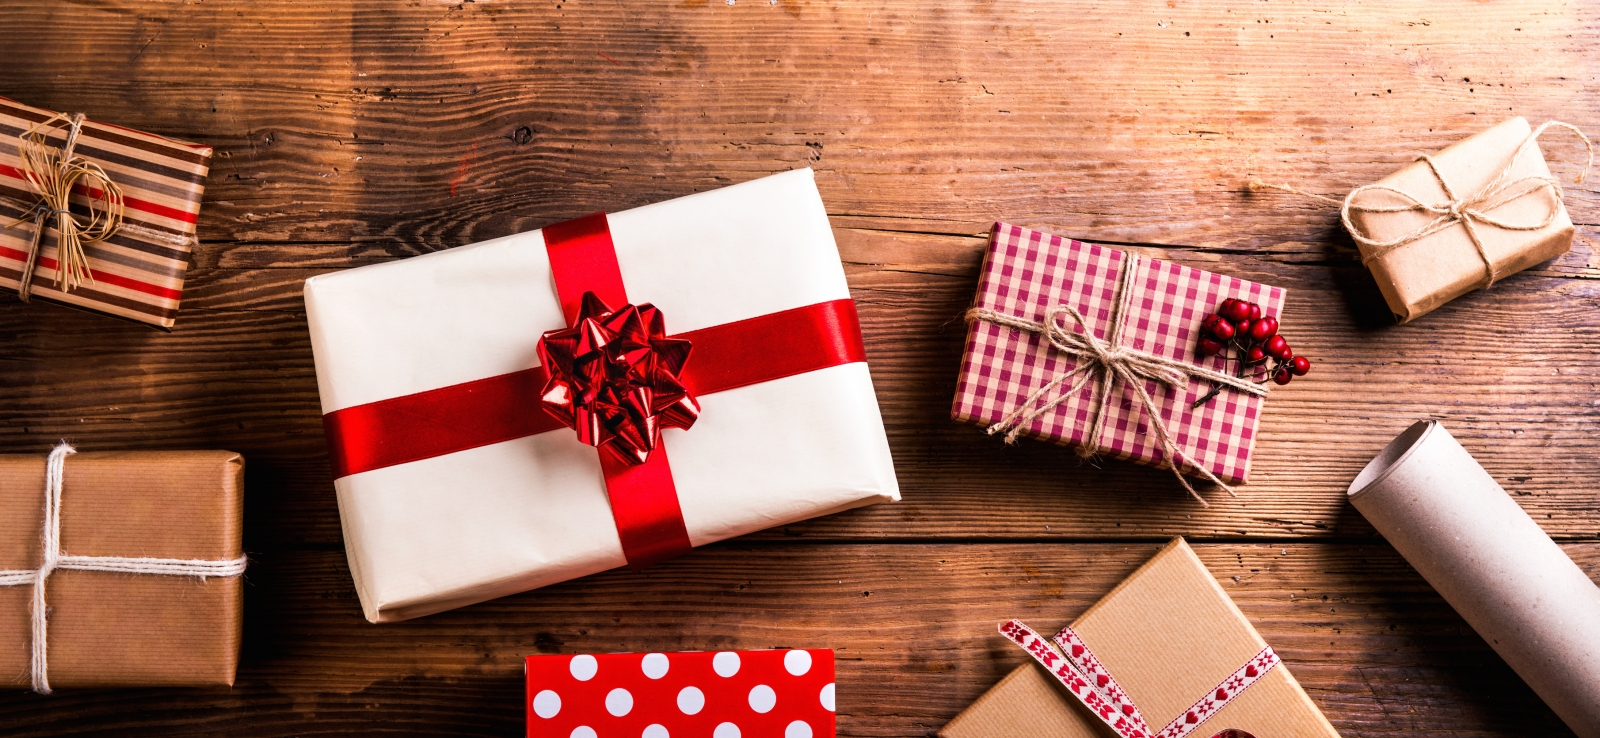 Twin Cities Holiday Shopping